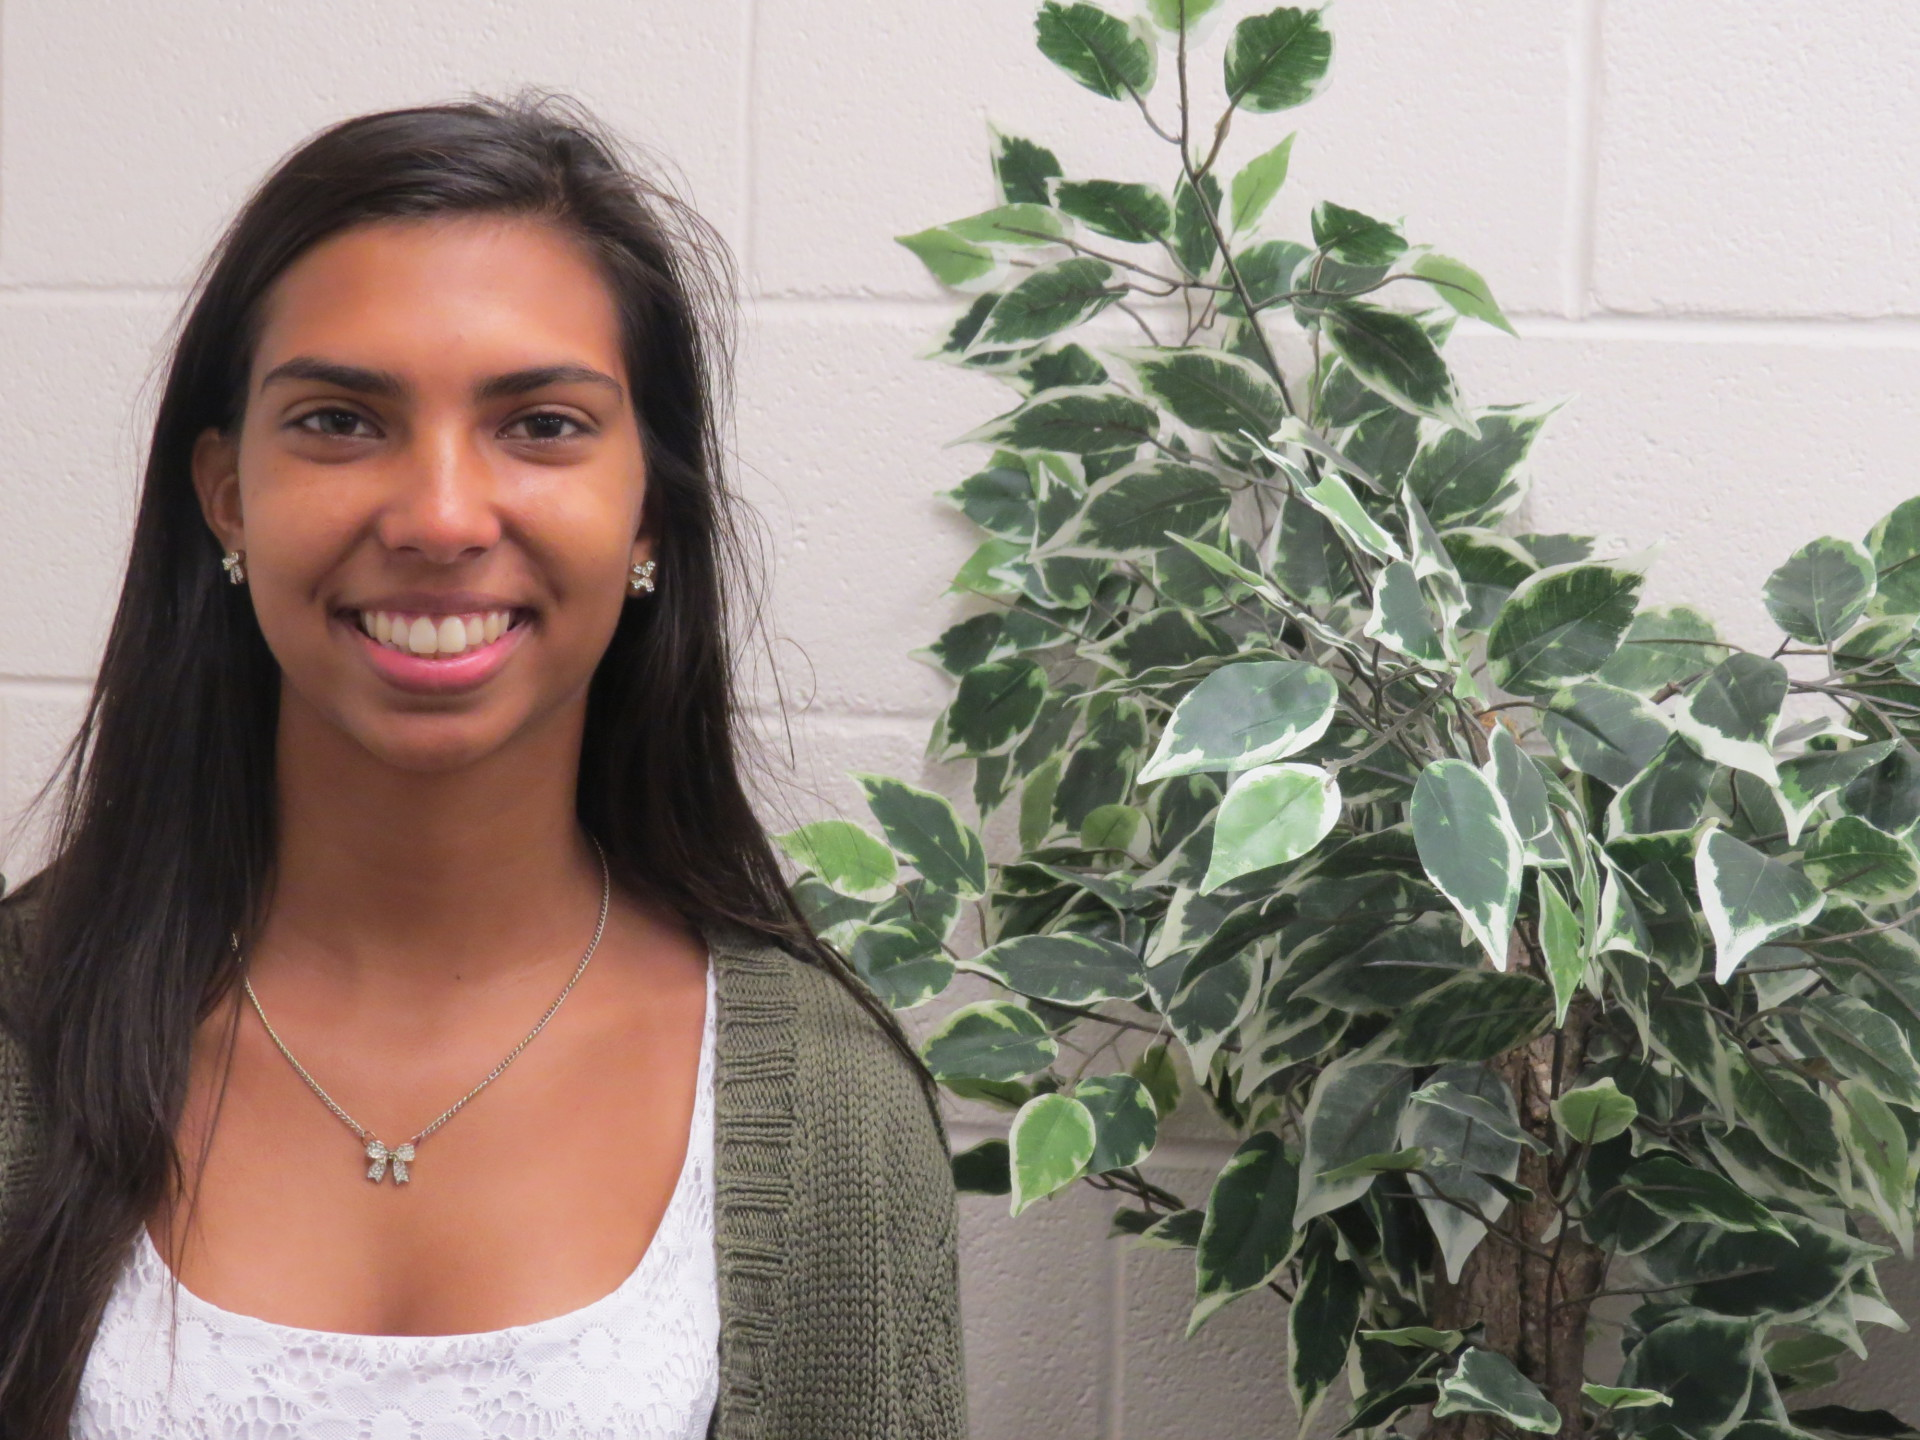 Catherine Persad accepted into the UROP Research Scholars Program.